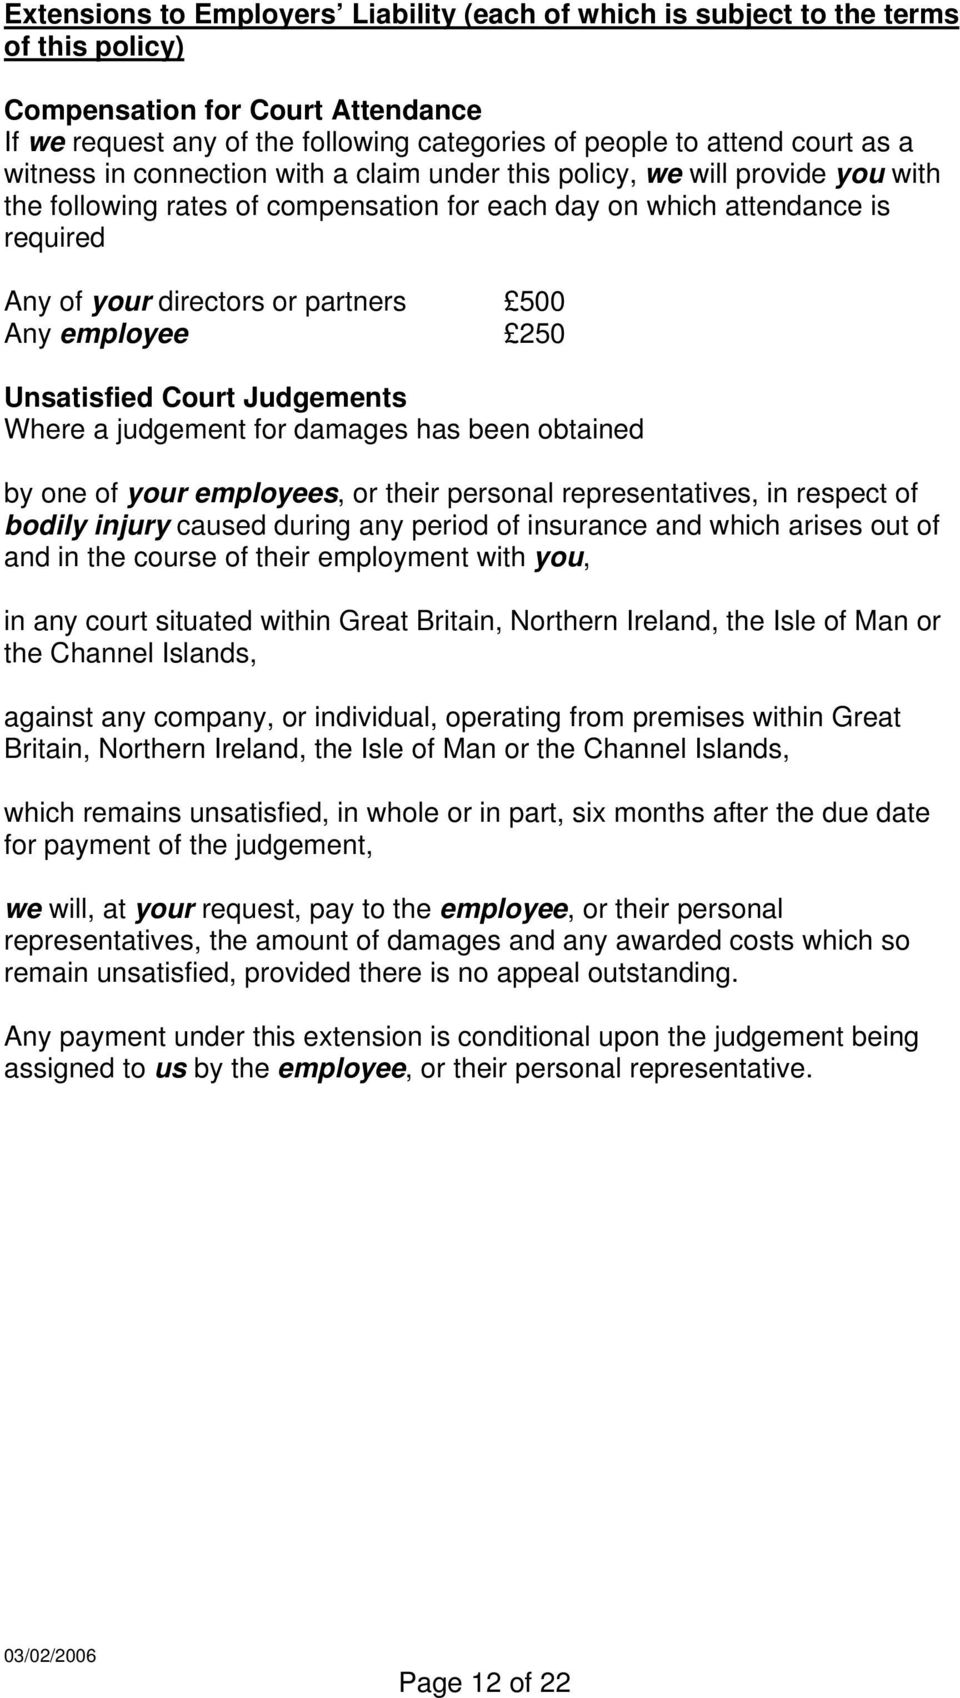 Any employee 250 Unsatisfied Court Judgements Where a judgement for damages has been obtained by one of your employees, or their personal representatives, in respect of bodily injury caused during